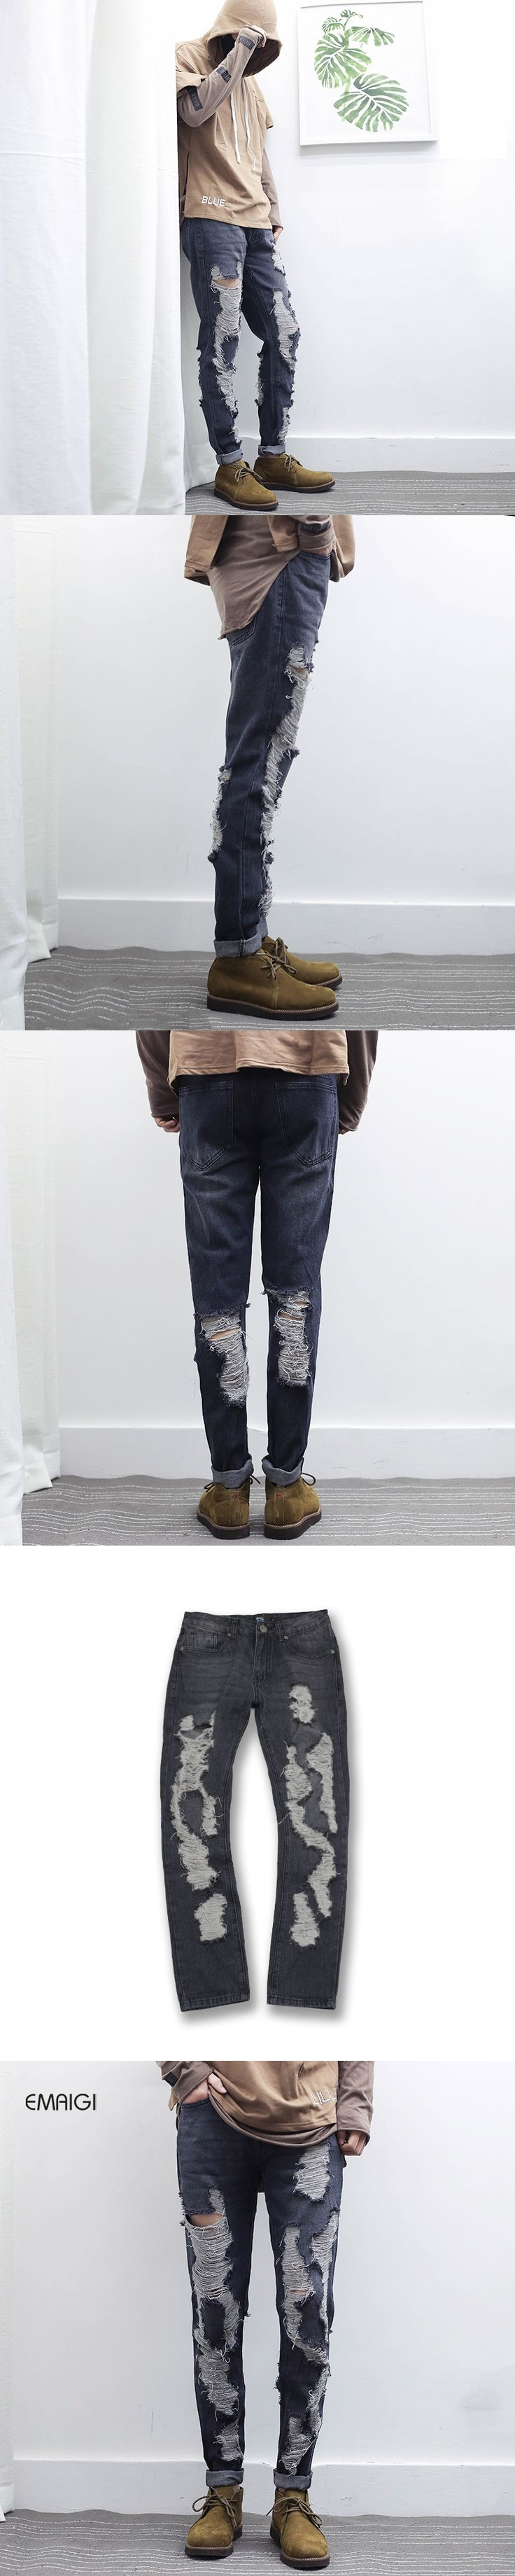 2017 New Male Hole Metrosexual Straight Destroyed Jeans Casual Ripped Jeans Homme Retro Men's Denim Trousers